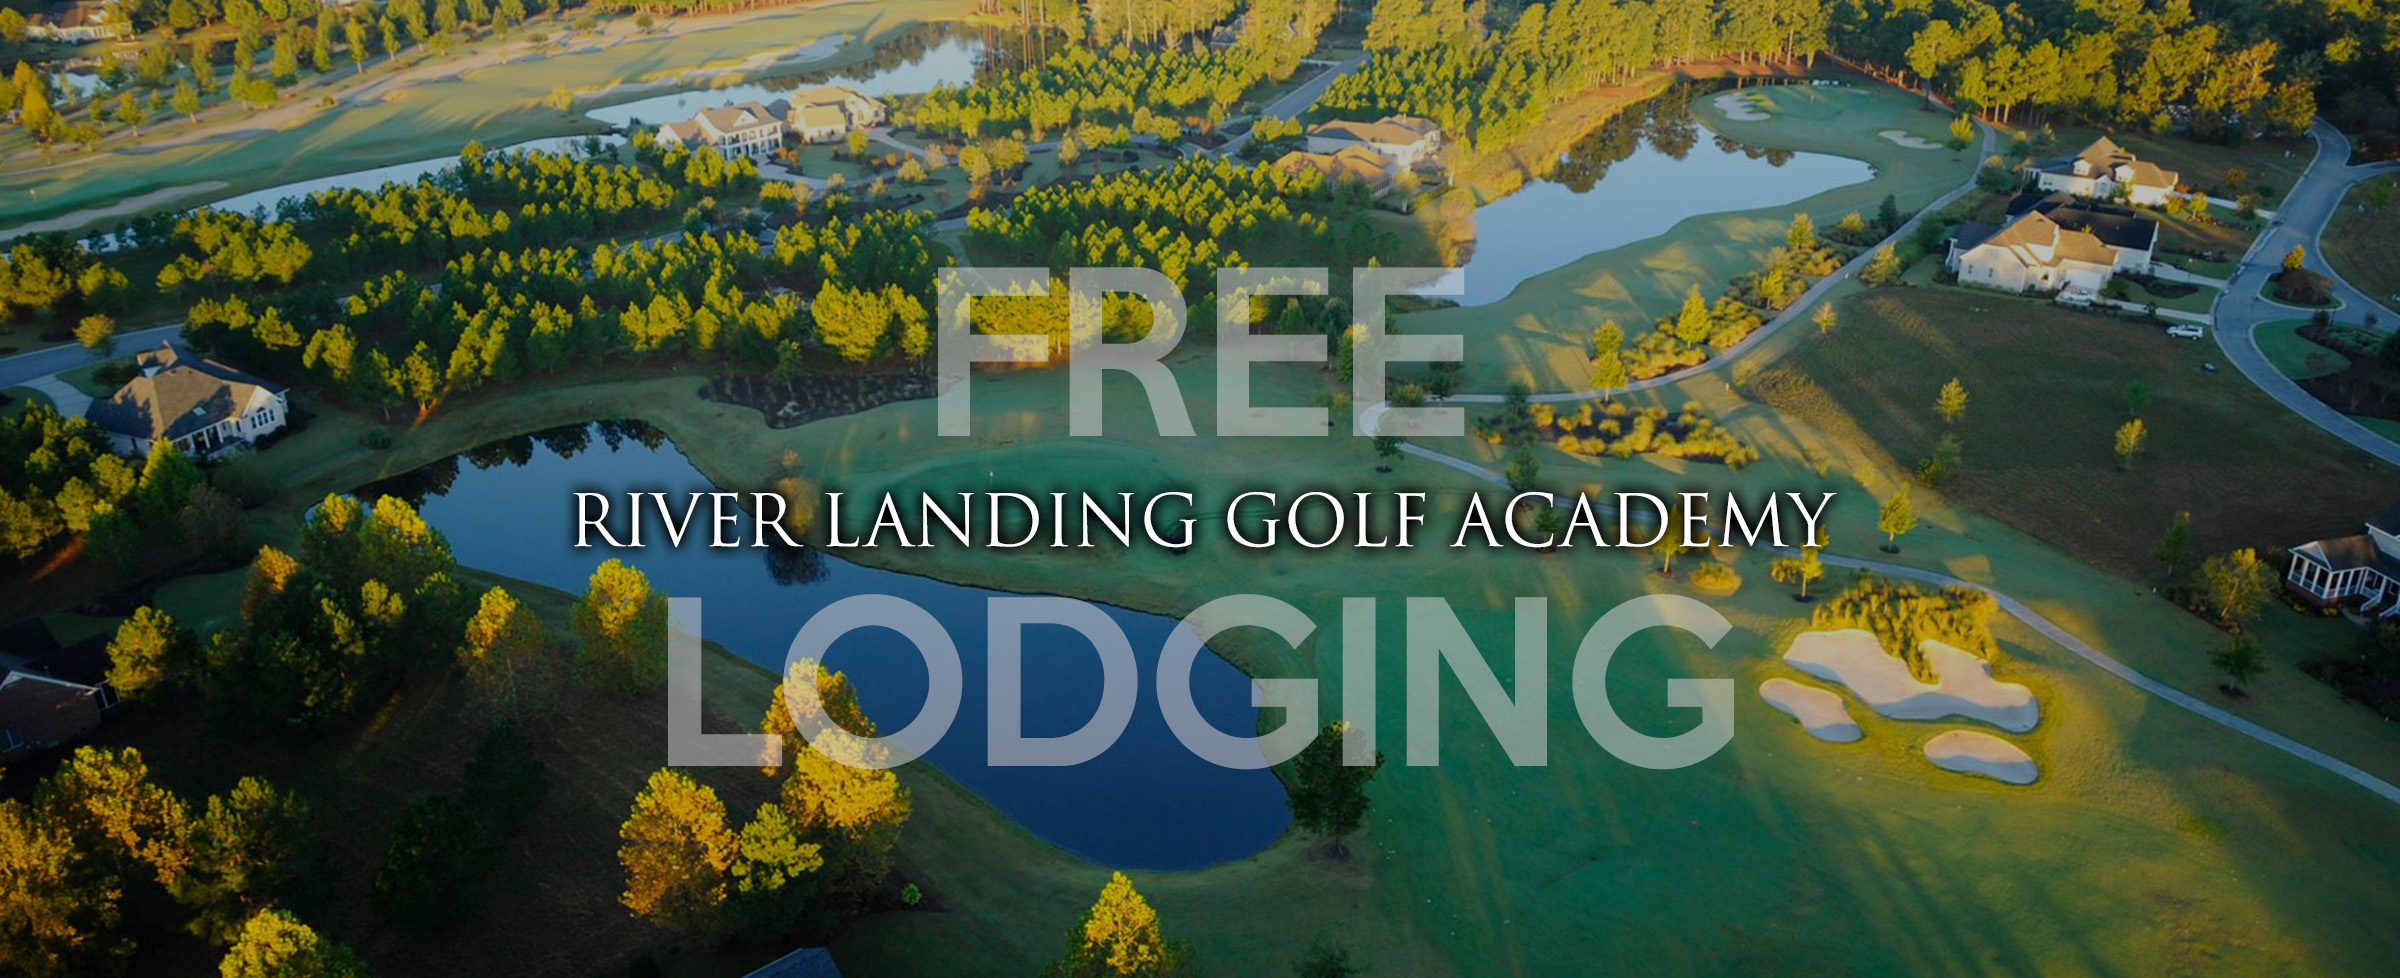 river-landing-north-carolina-golf-academy.jpg